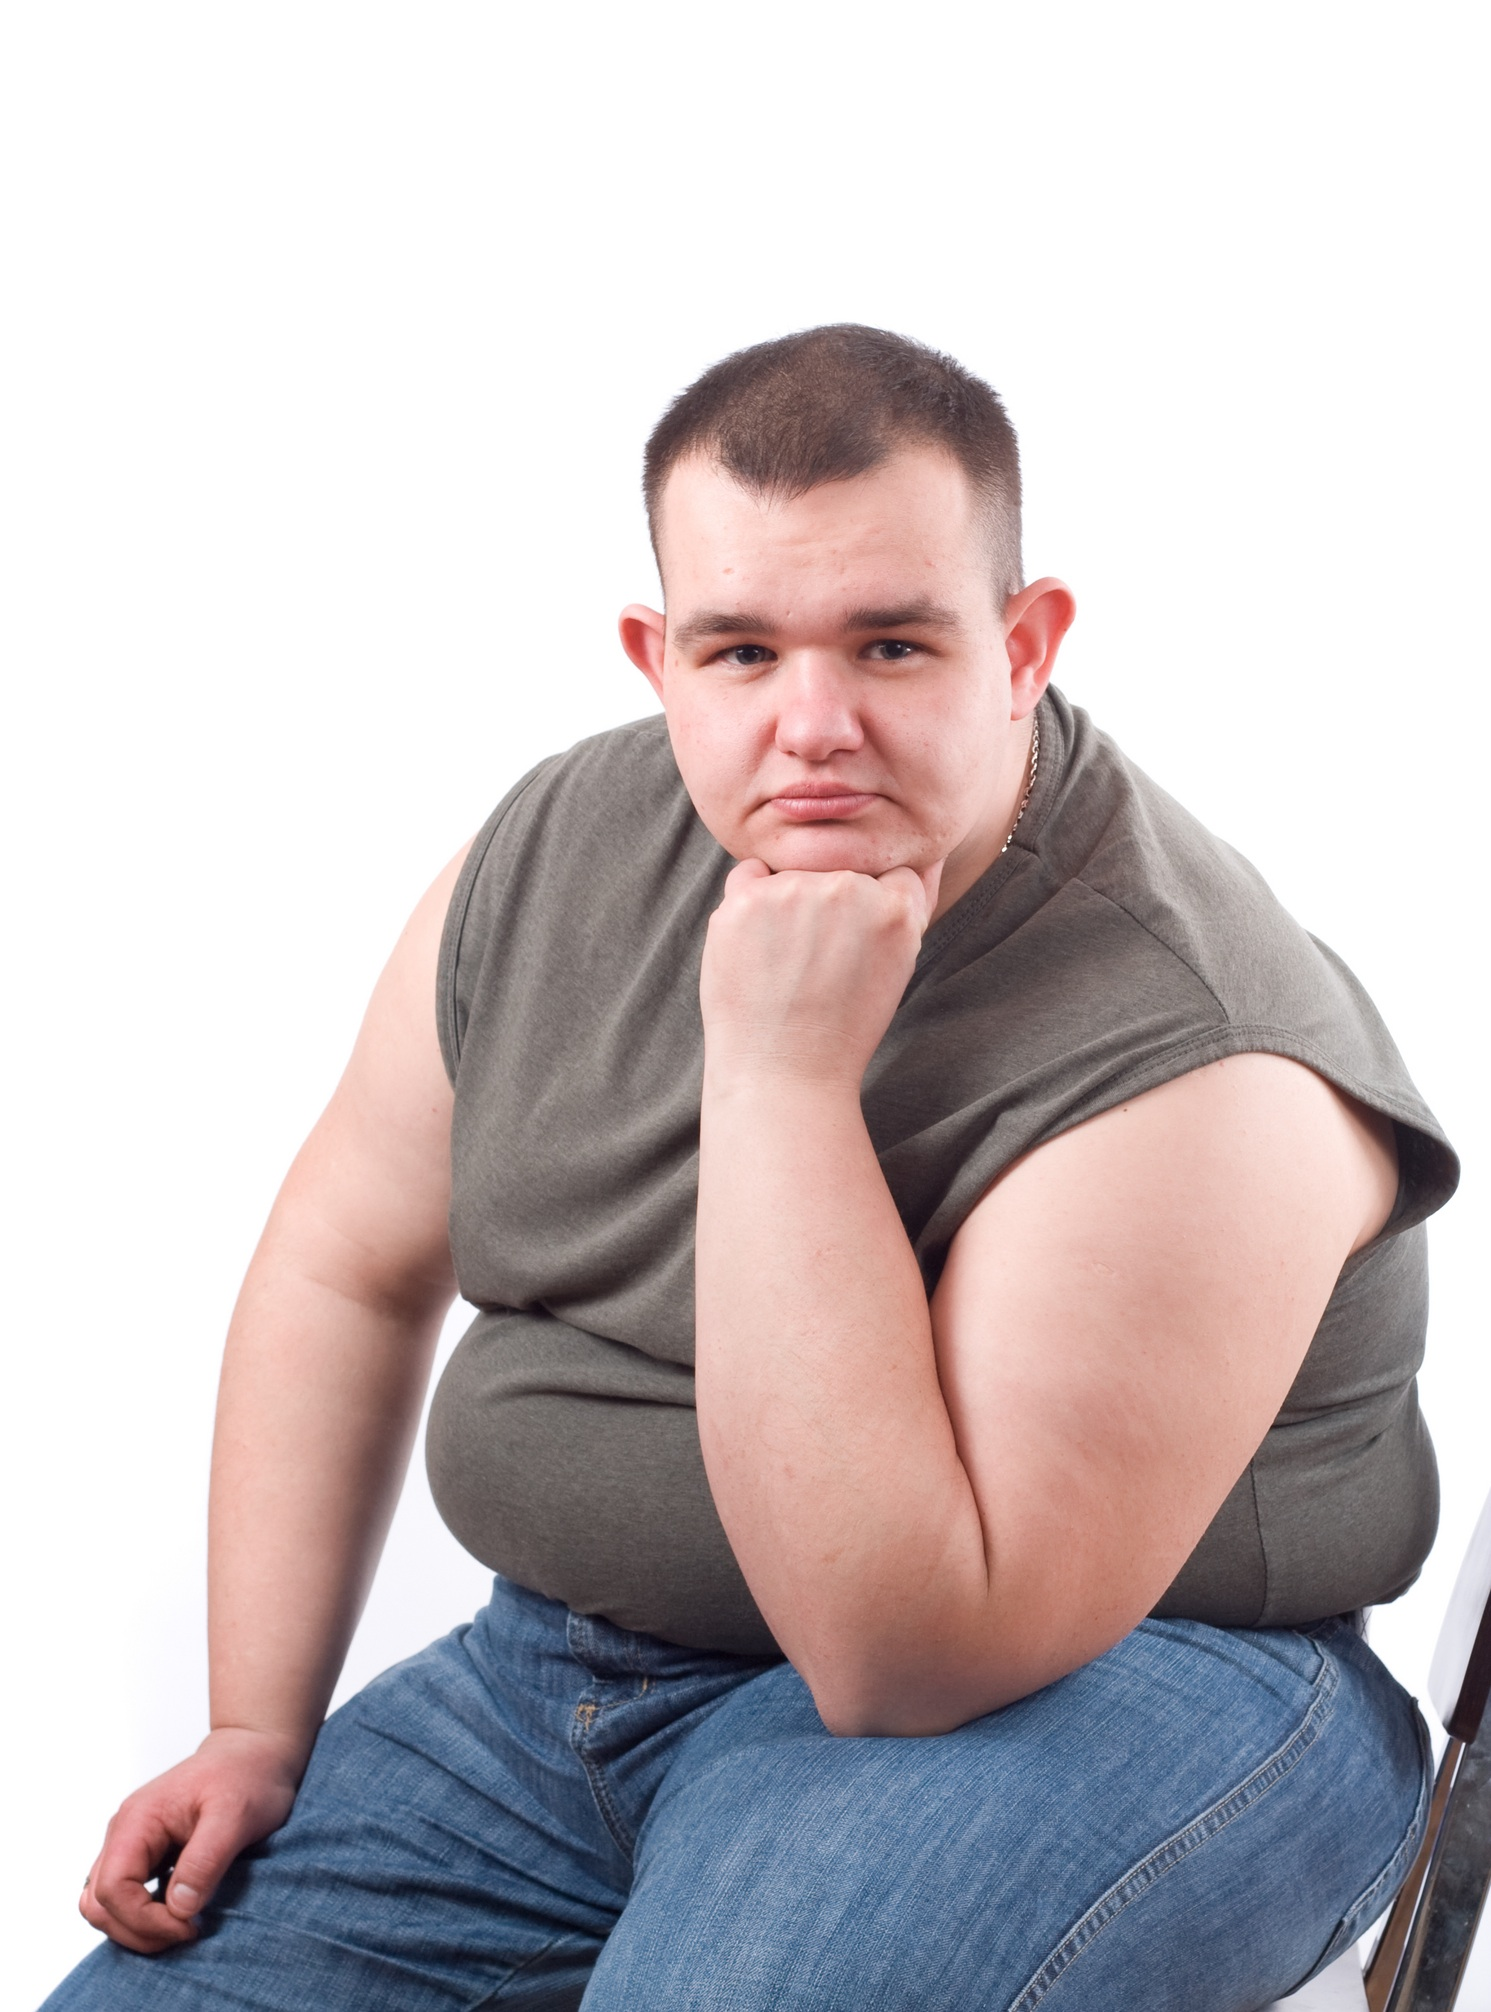 Fat Men Wallpapers High Quality | Download Free